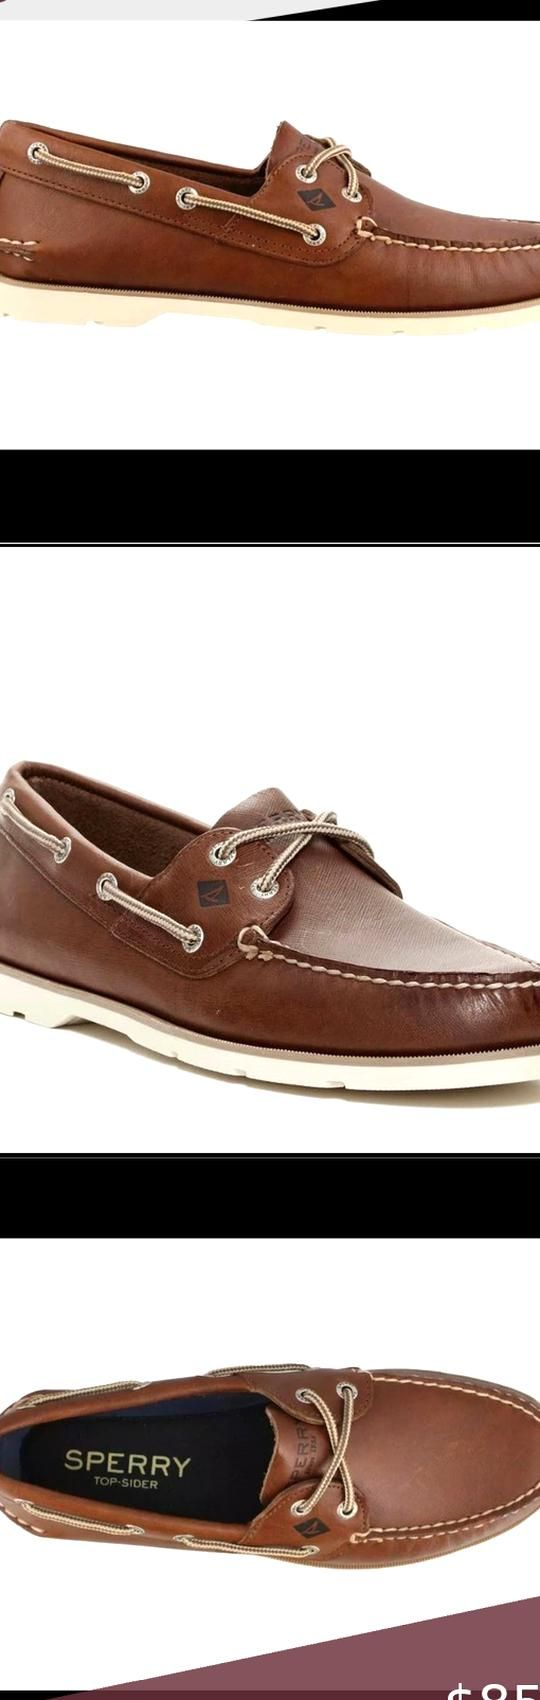 Sperry Mens Boat Shoe NWT Sperry